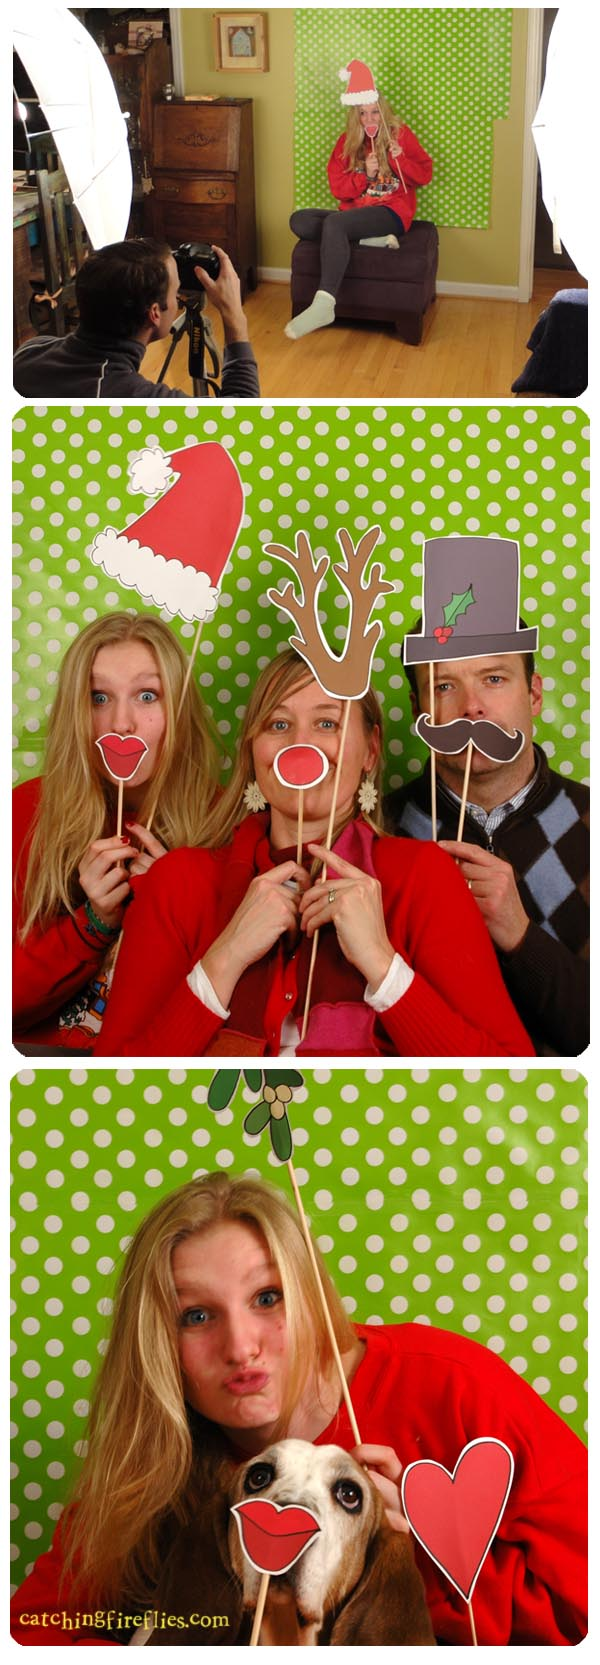 Free photo booth props creative gift ideas news at